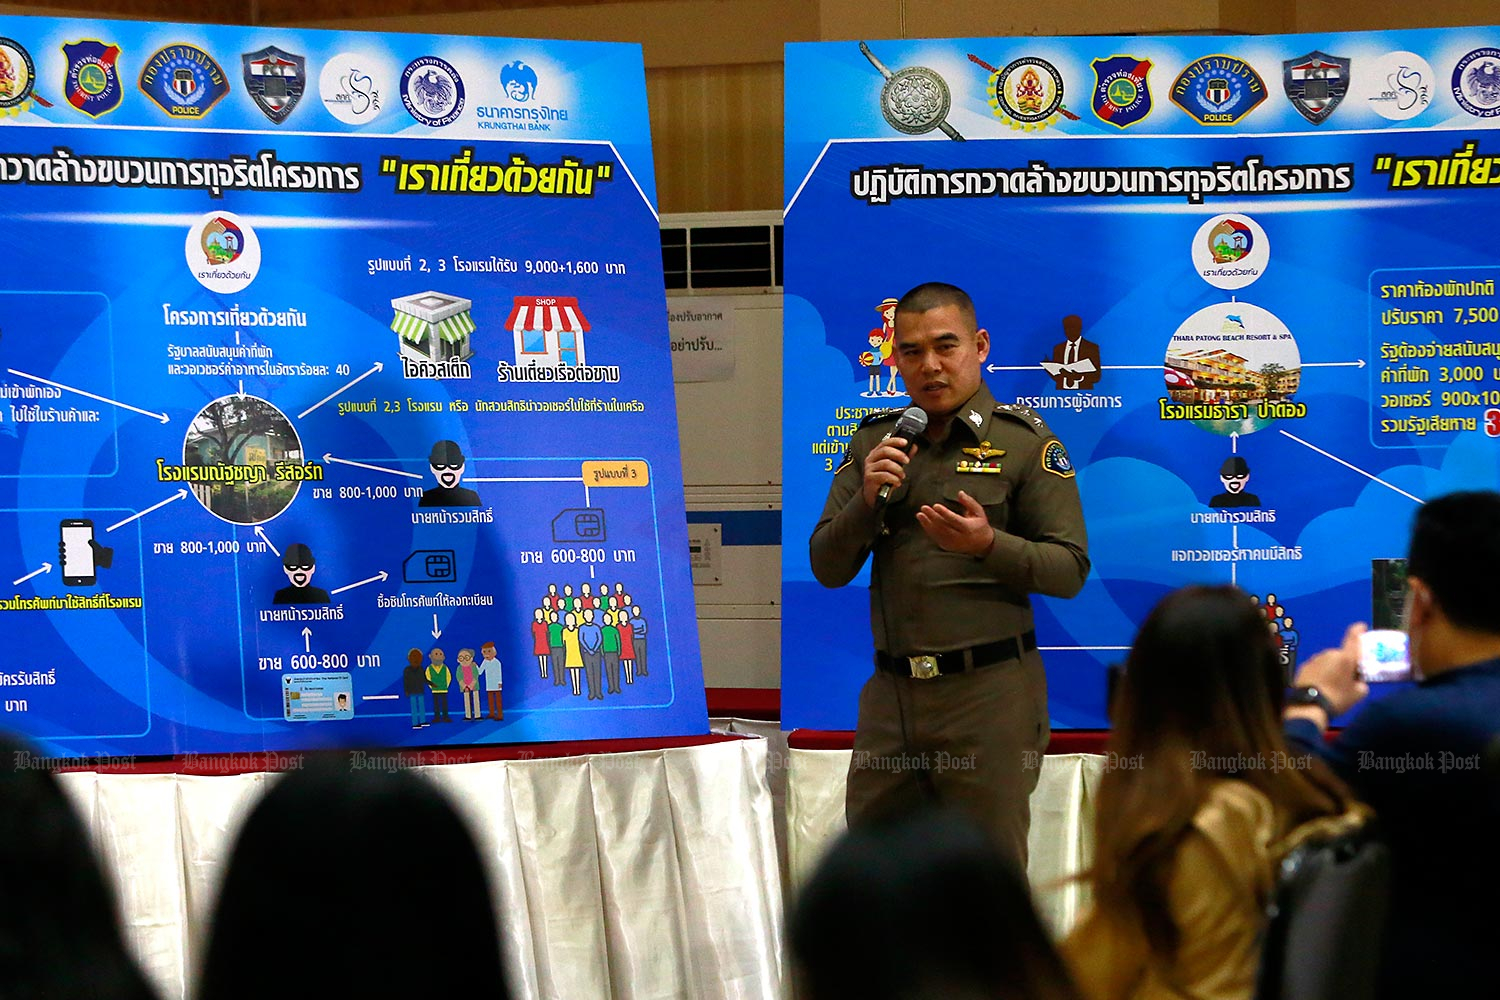 A police officer shows a chart detailing frauds involving the Rao Tiew Duay Kan (We Travel Together) co-payment scheme. (Photo by Arnun Chonmahatrakool)